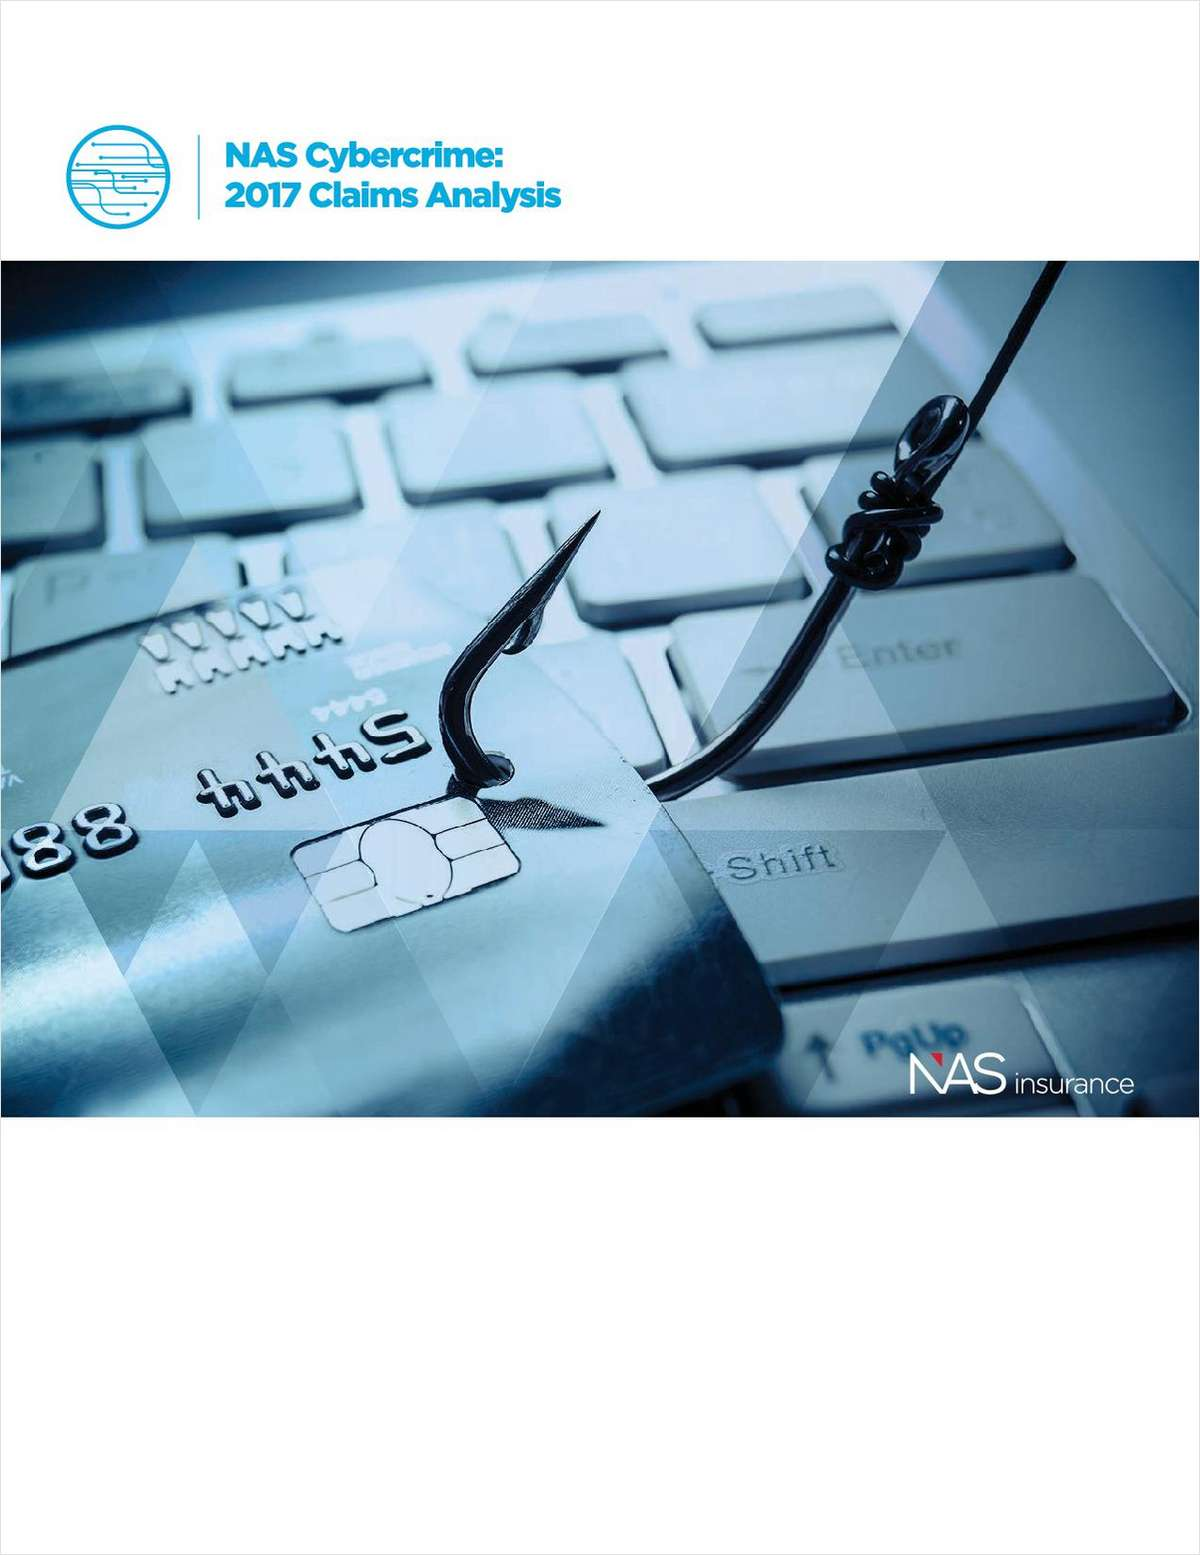 Cybercrime: 2017 Claims Analysis